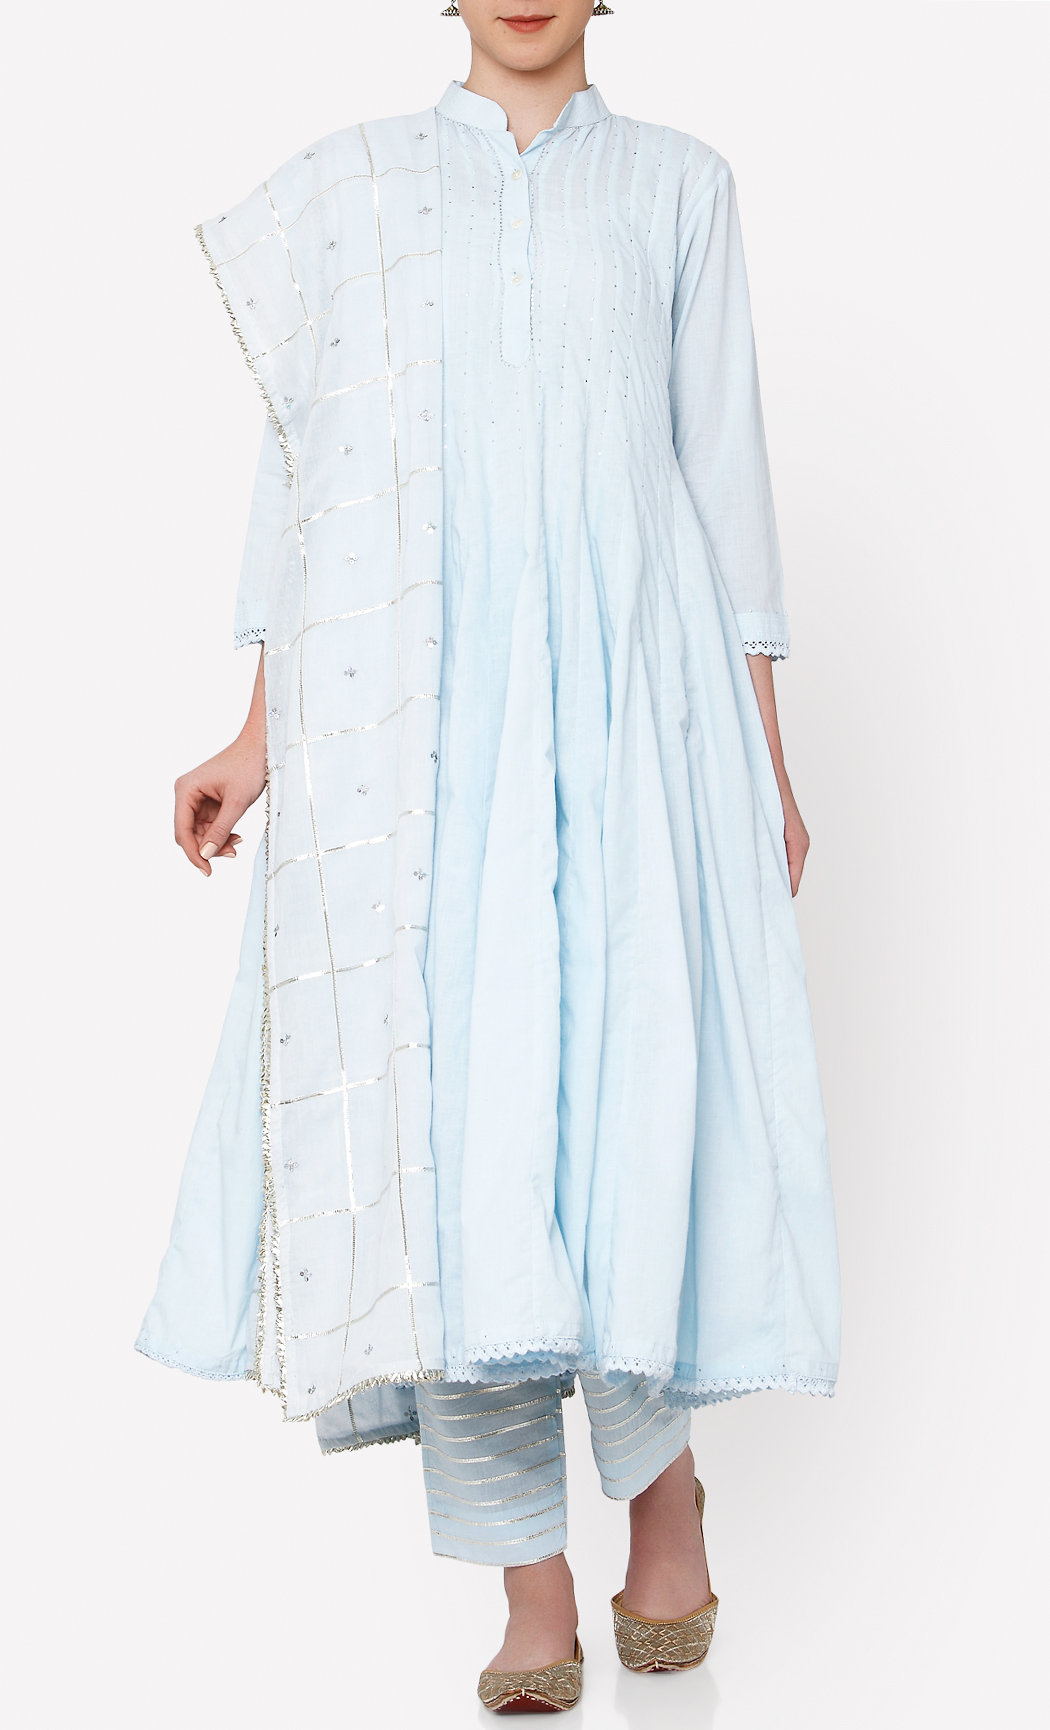 Zubeida Powder Blue Kurta and Pants Set. Buy Online.